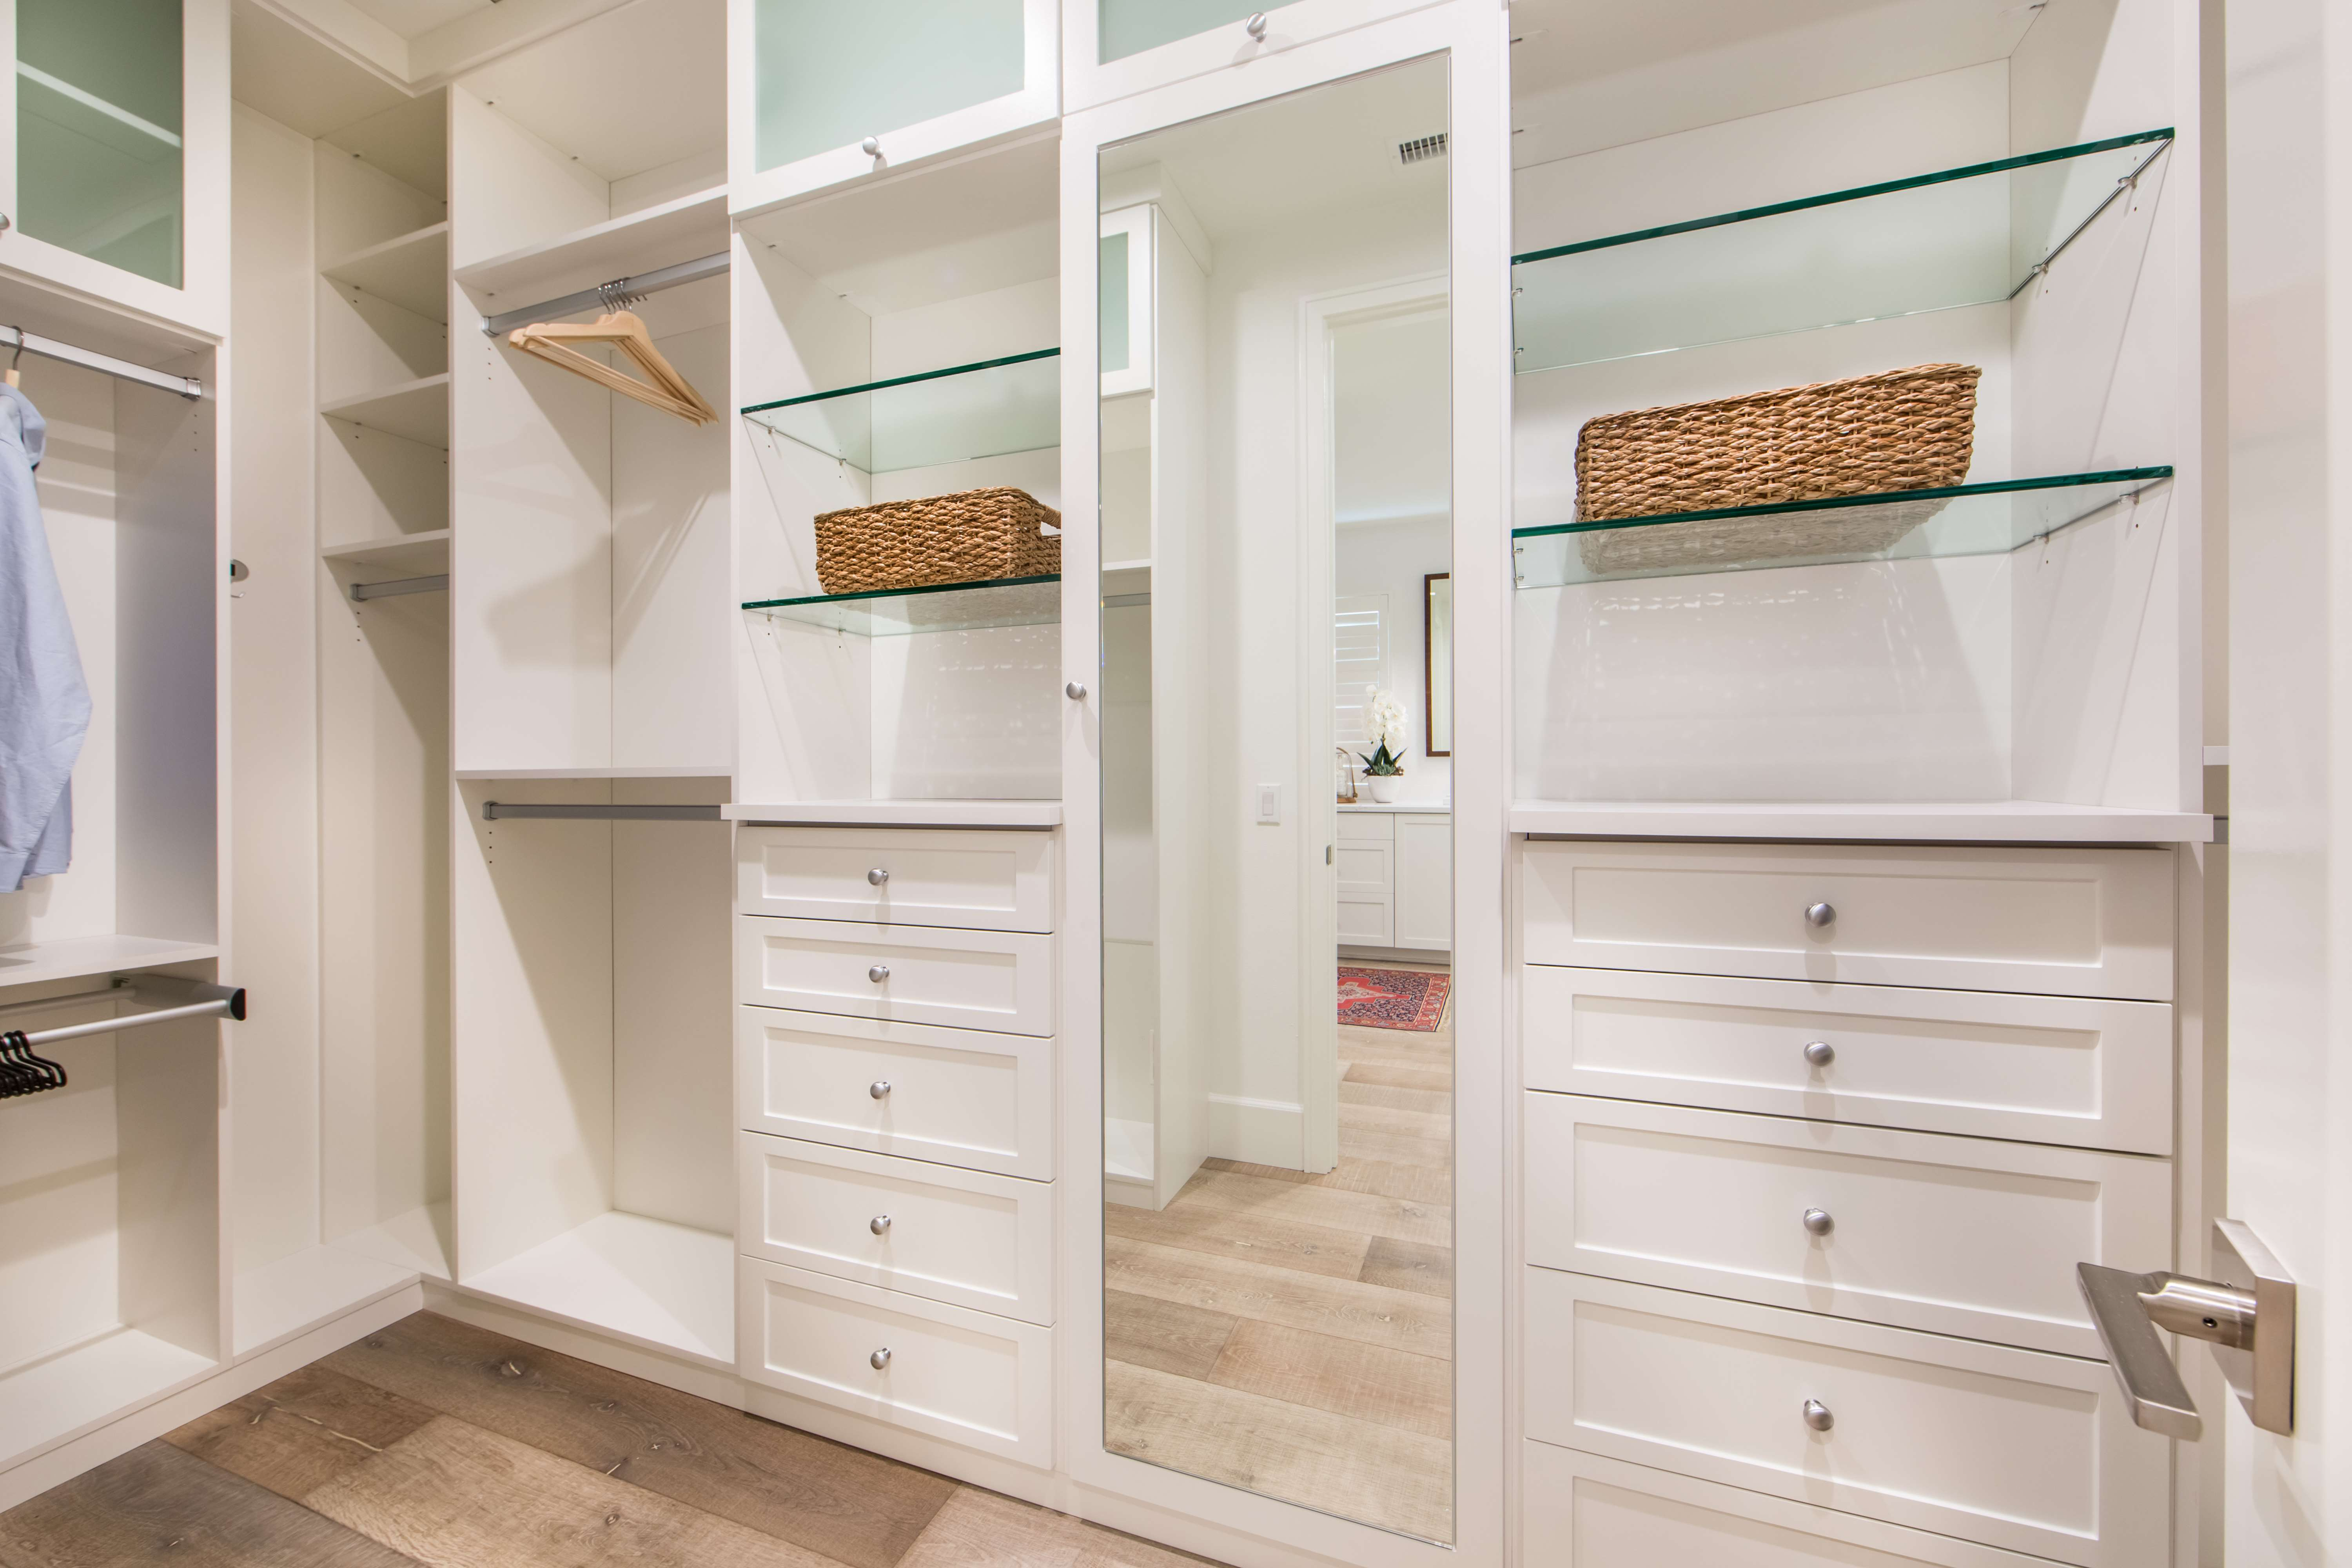 Master Closet at Como Residence 2 in Irvine